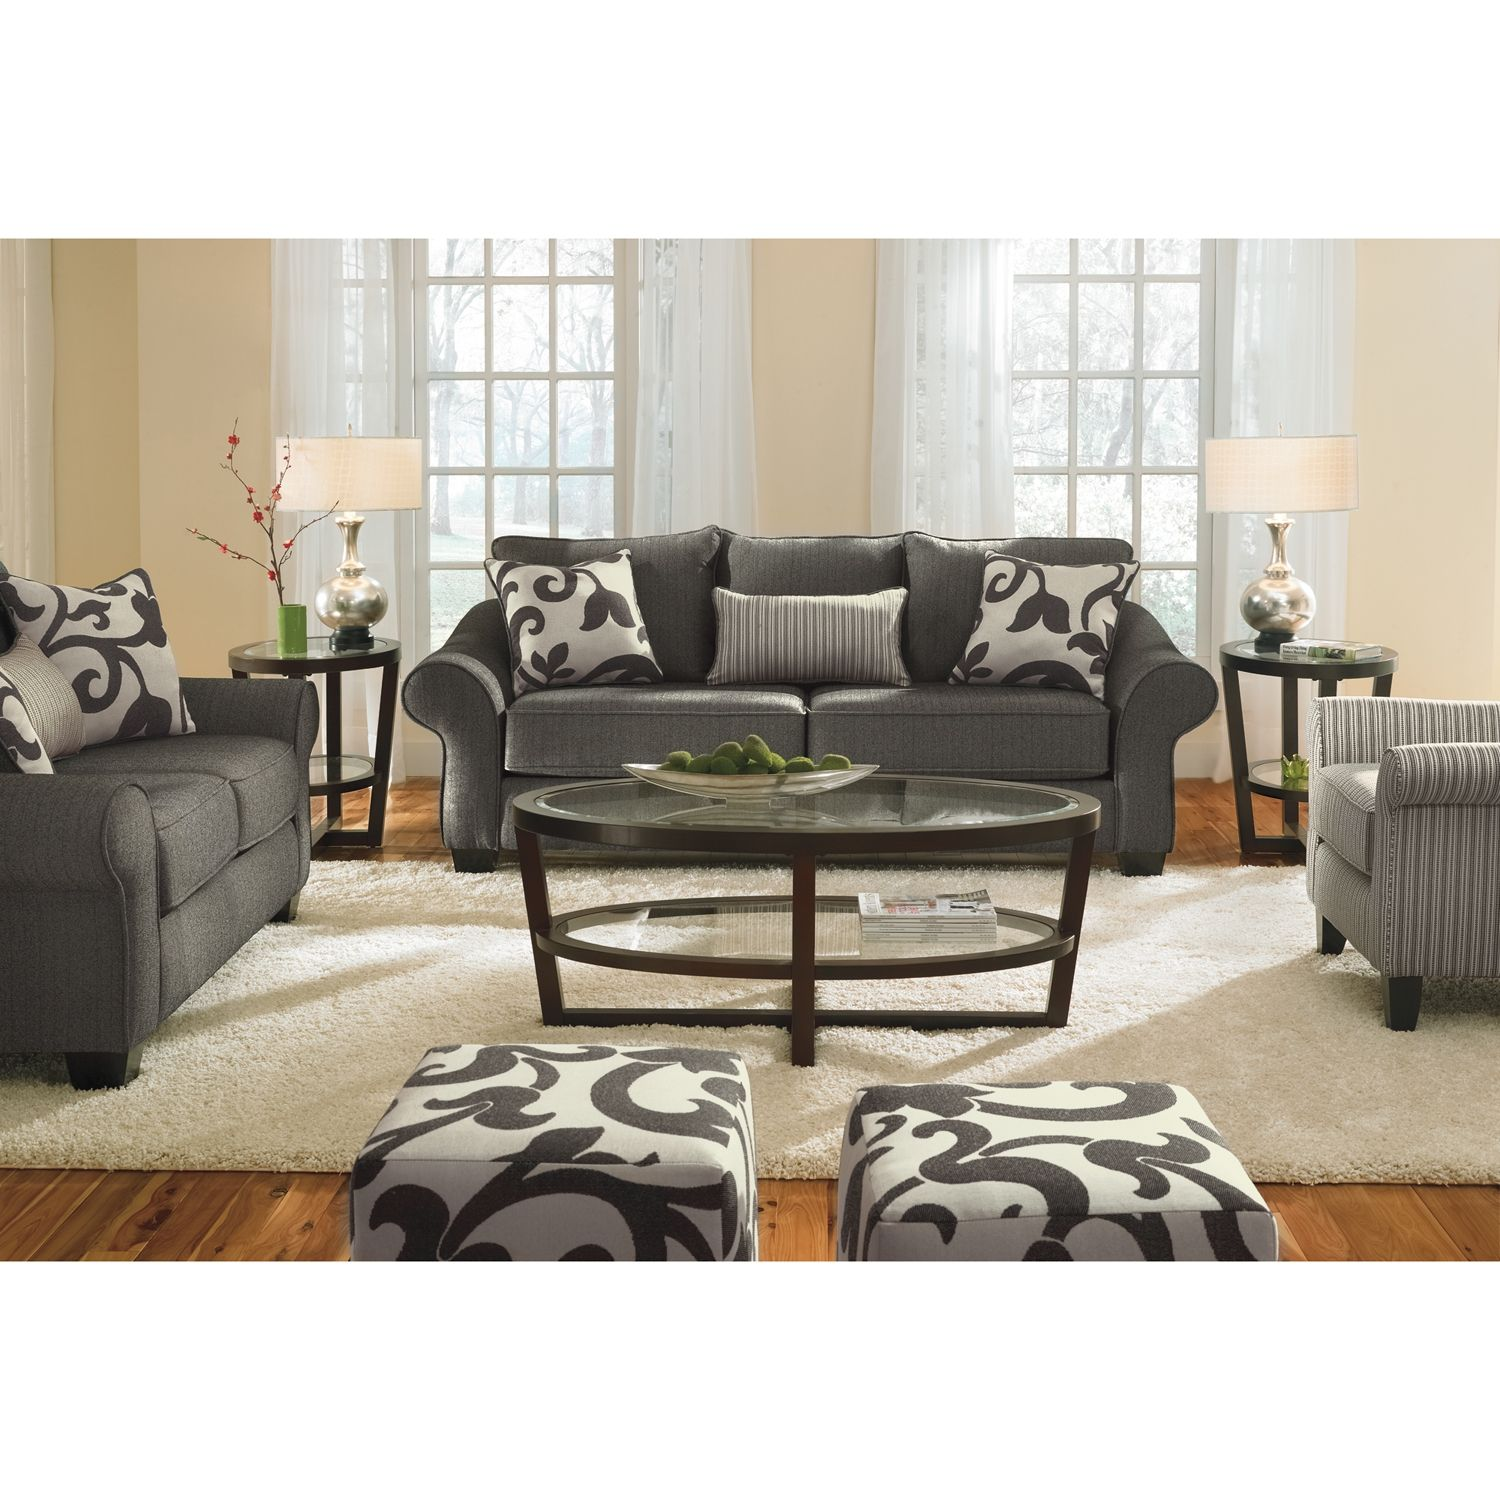 Value City: Colette Gray Sofa (with Photos Of The Loveseat, Chair, And